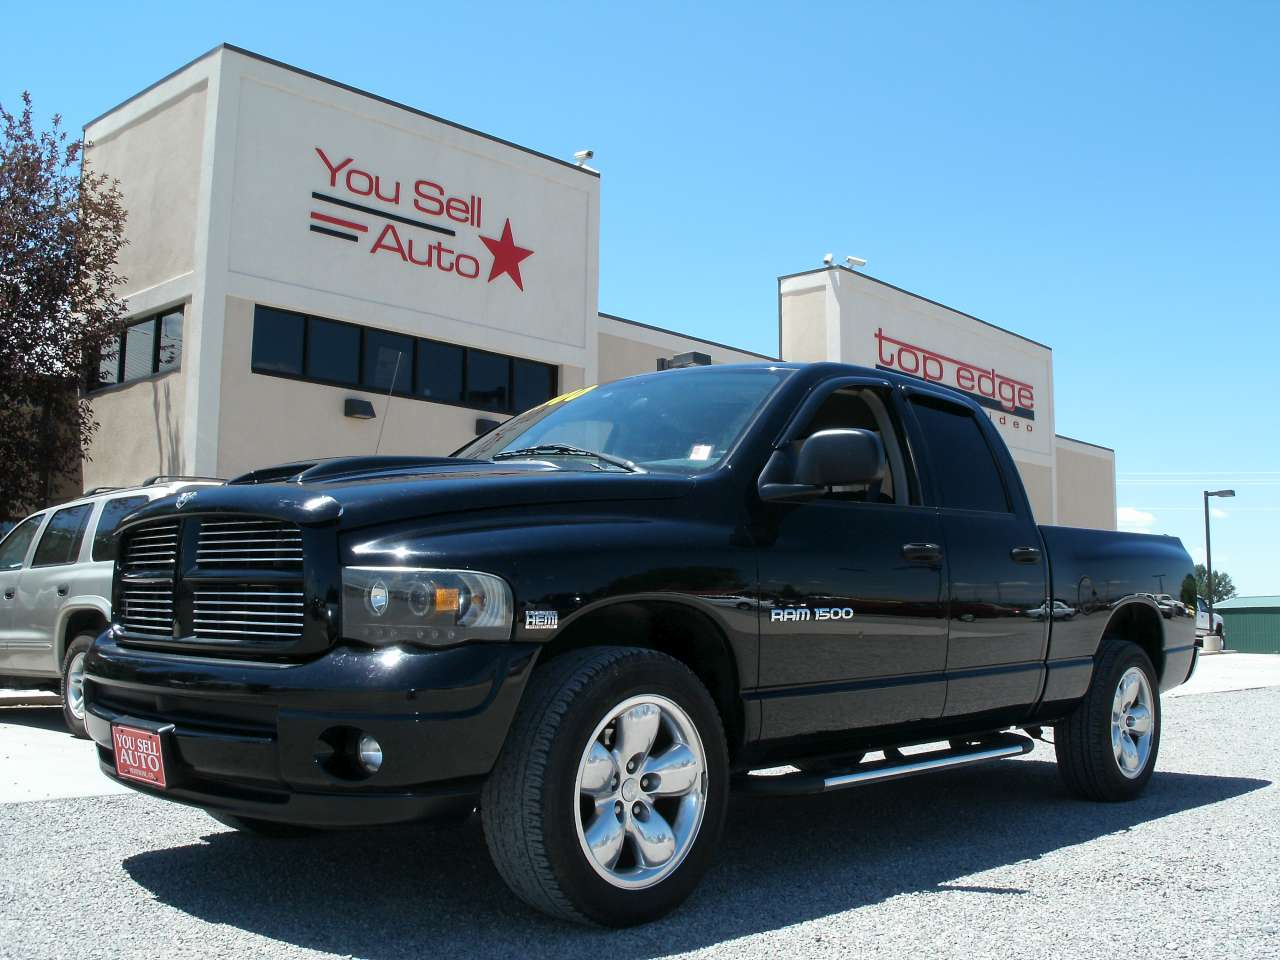 2003 Dodge Ram 1500 Slt Limited Edition 11999 You Sell Auto 1998 Fuel Filter Location